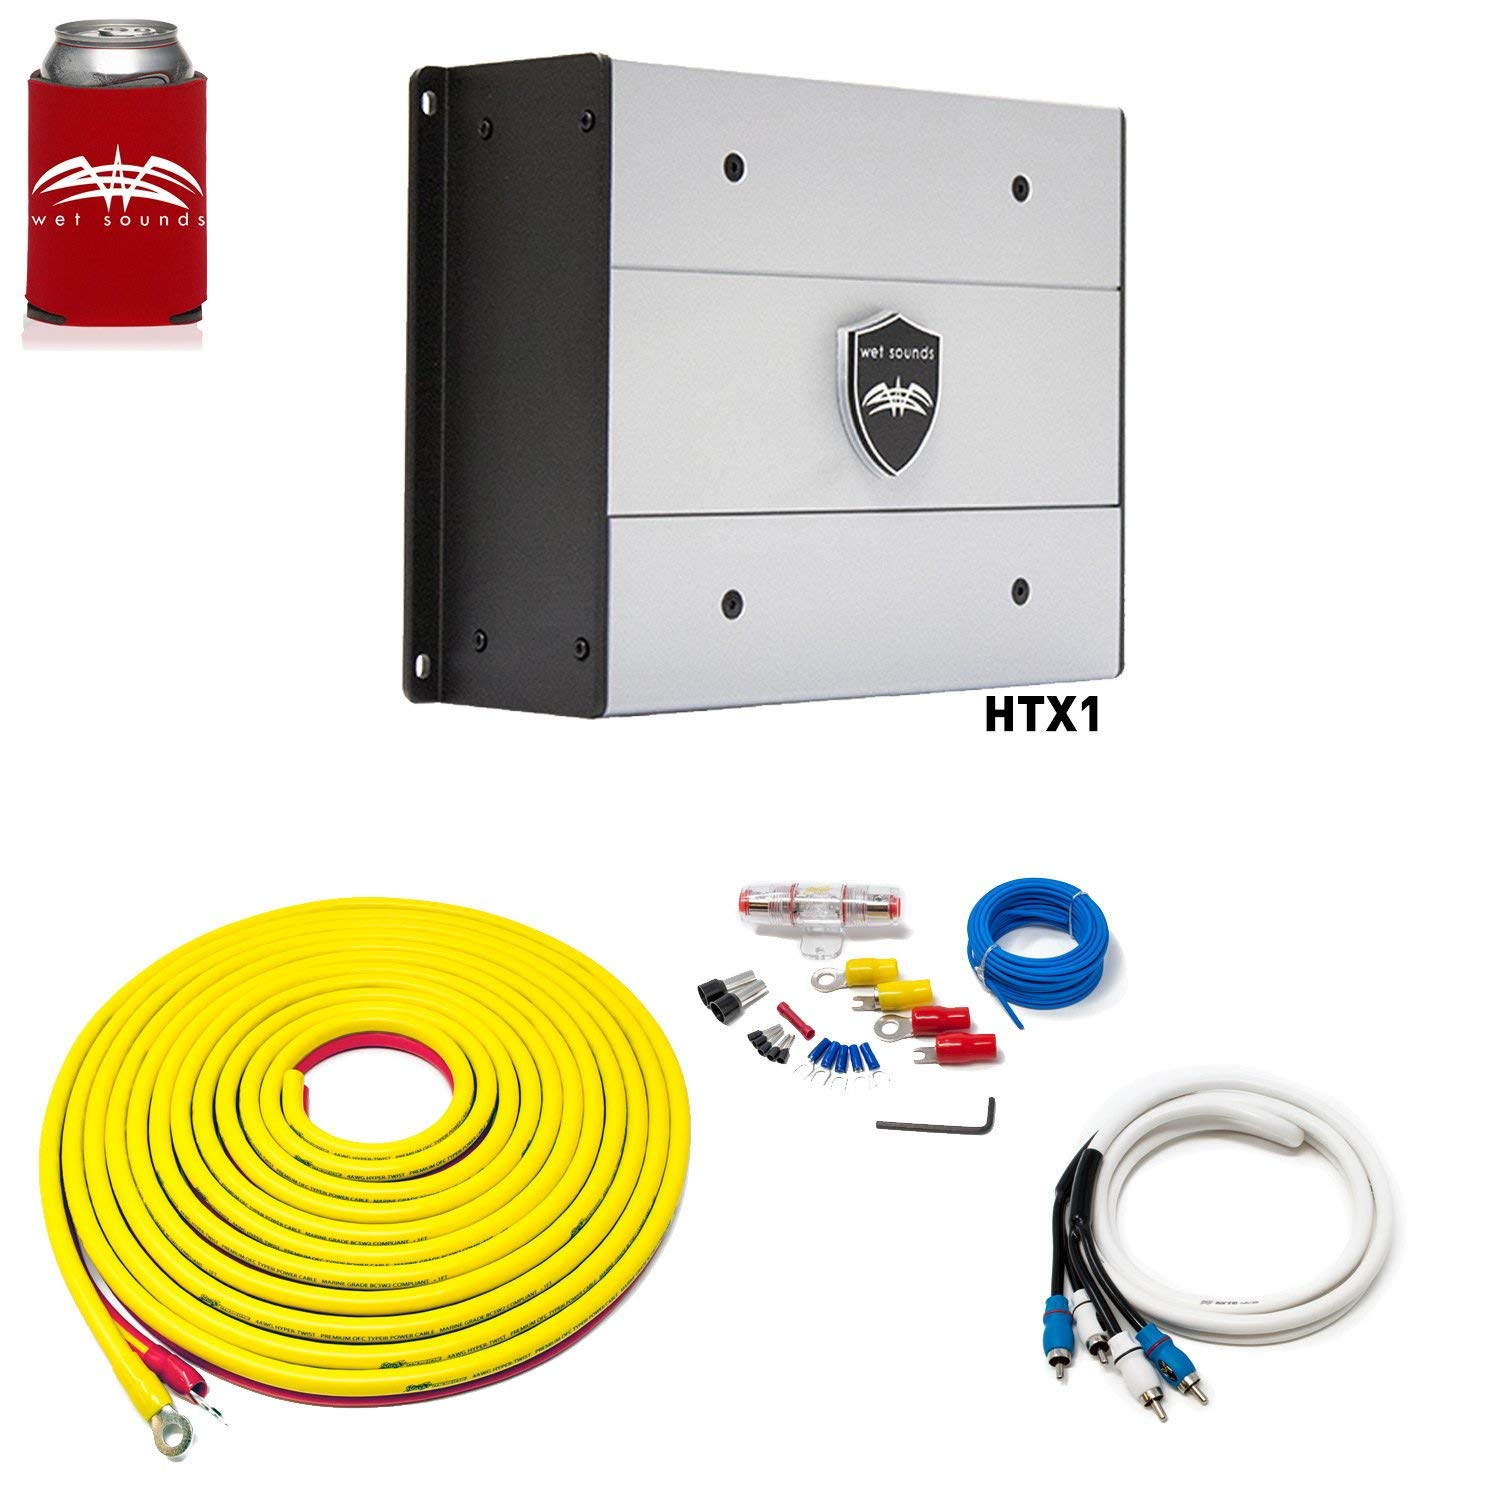 Cheap 100 Watt Amplifier Kit Find Deals On Complete 10 Awg Gauge Car Amp Wire Sub Subwoofer Wiring Installation Null Get Quotations Wet Sounds Htx1 Package 650 Stinger 7 Meter 4